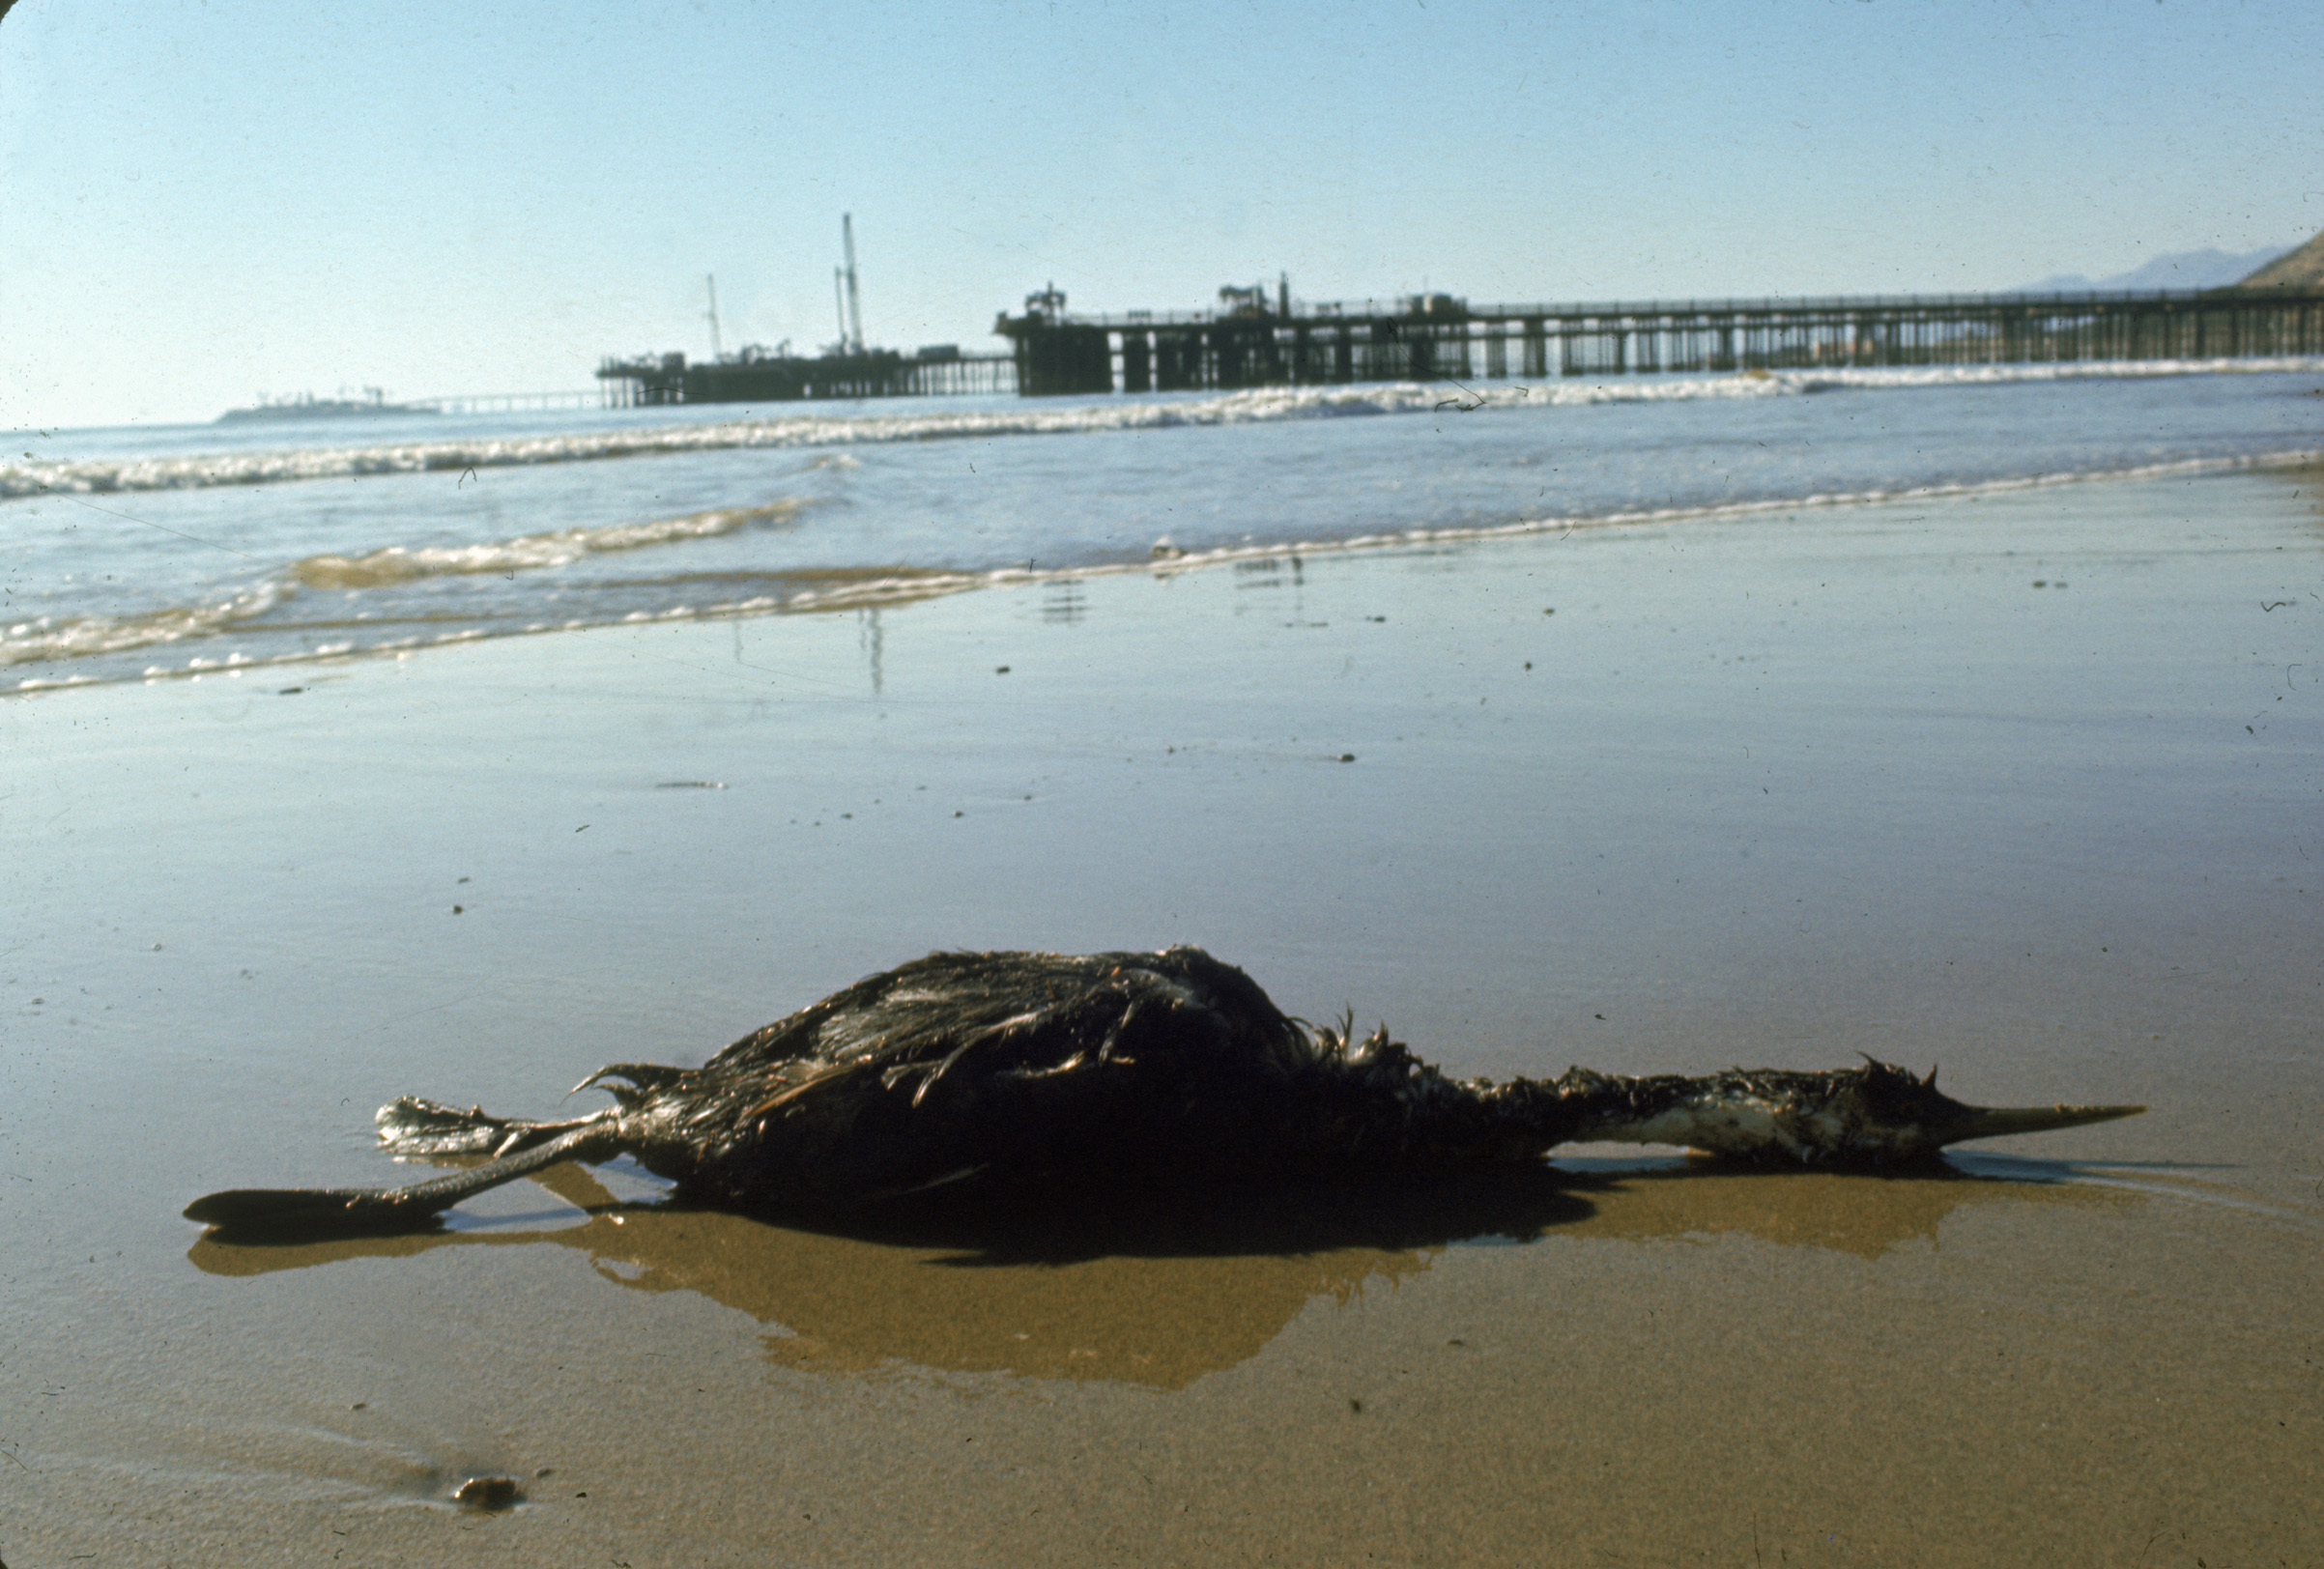 A seabird dead from oil slick, near Santa Barbara, Calif., in February 1969